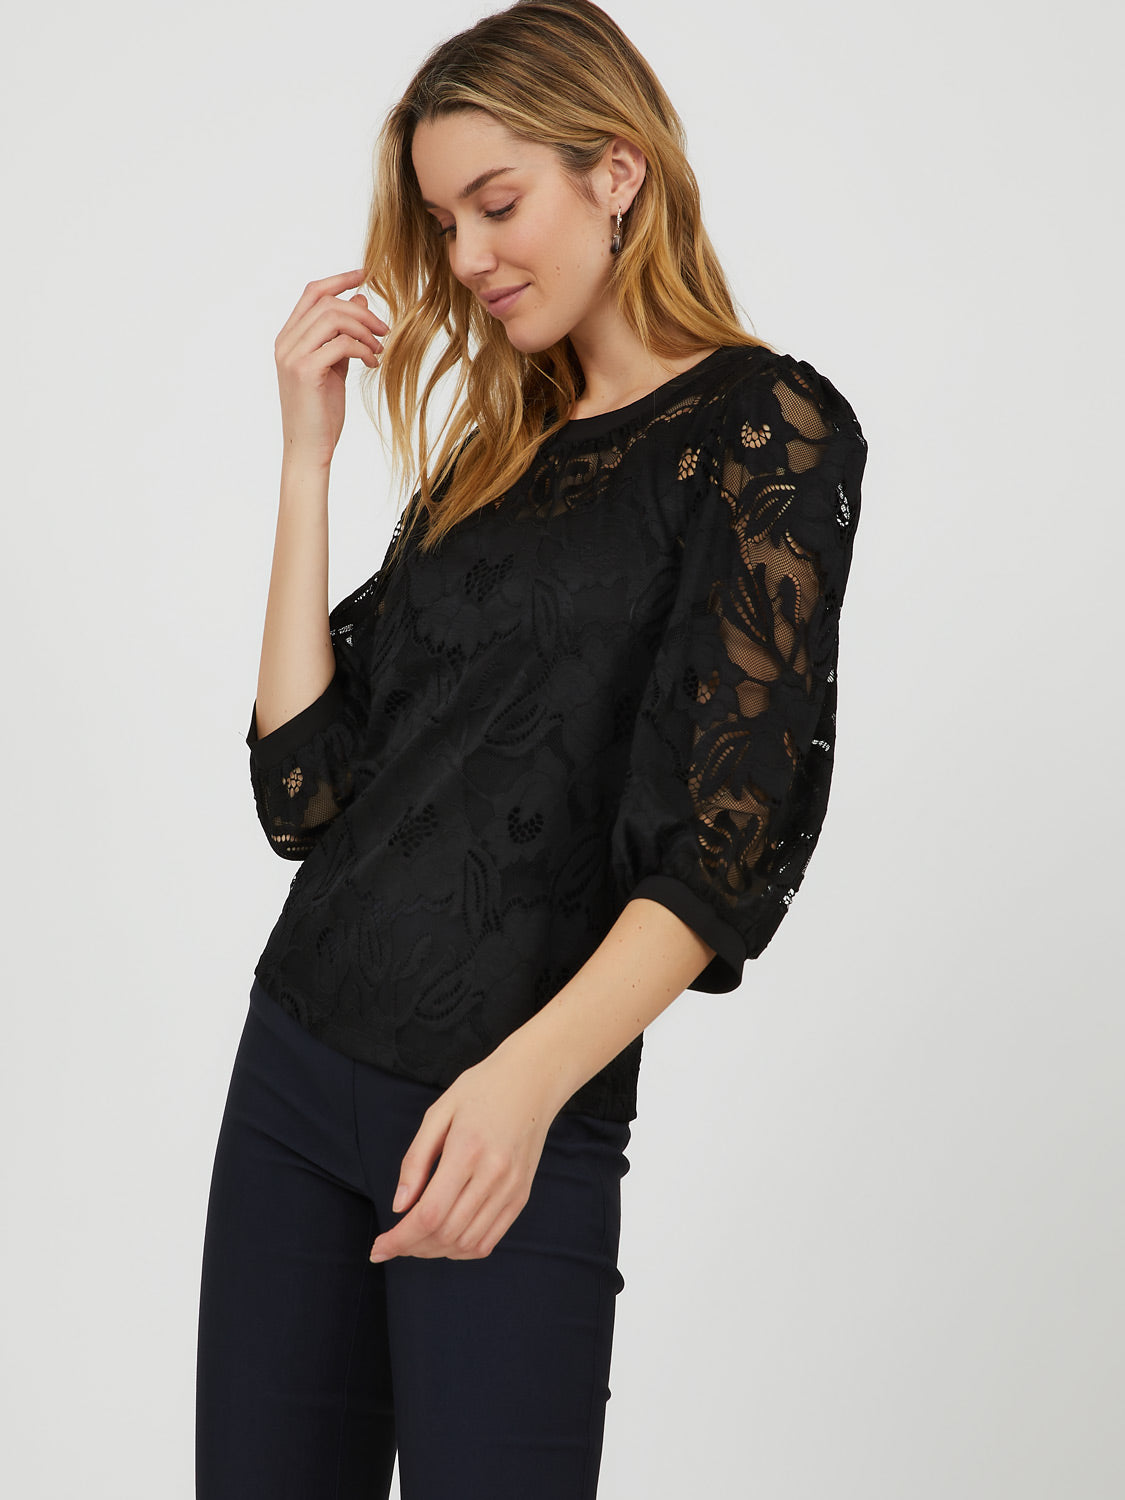 ¾ Puff Sleeve Stretch Lace Top